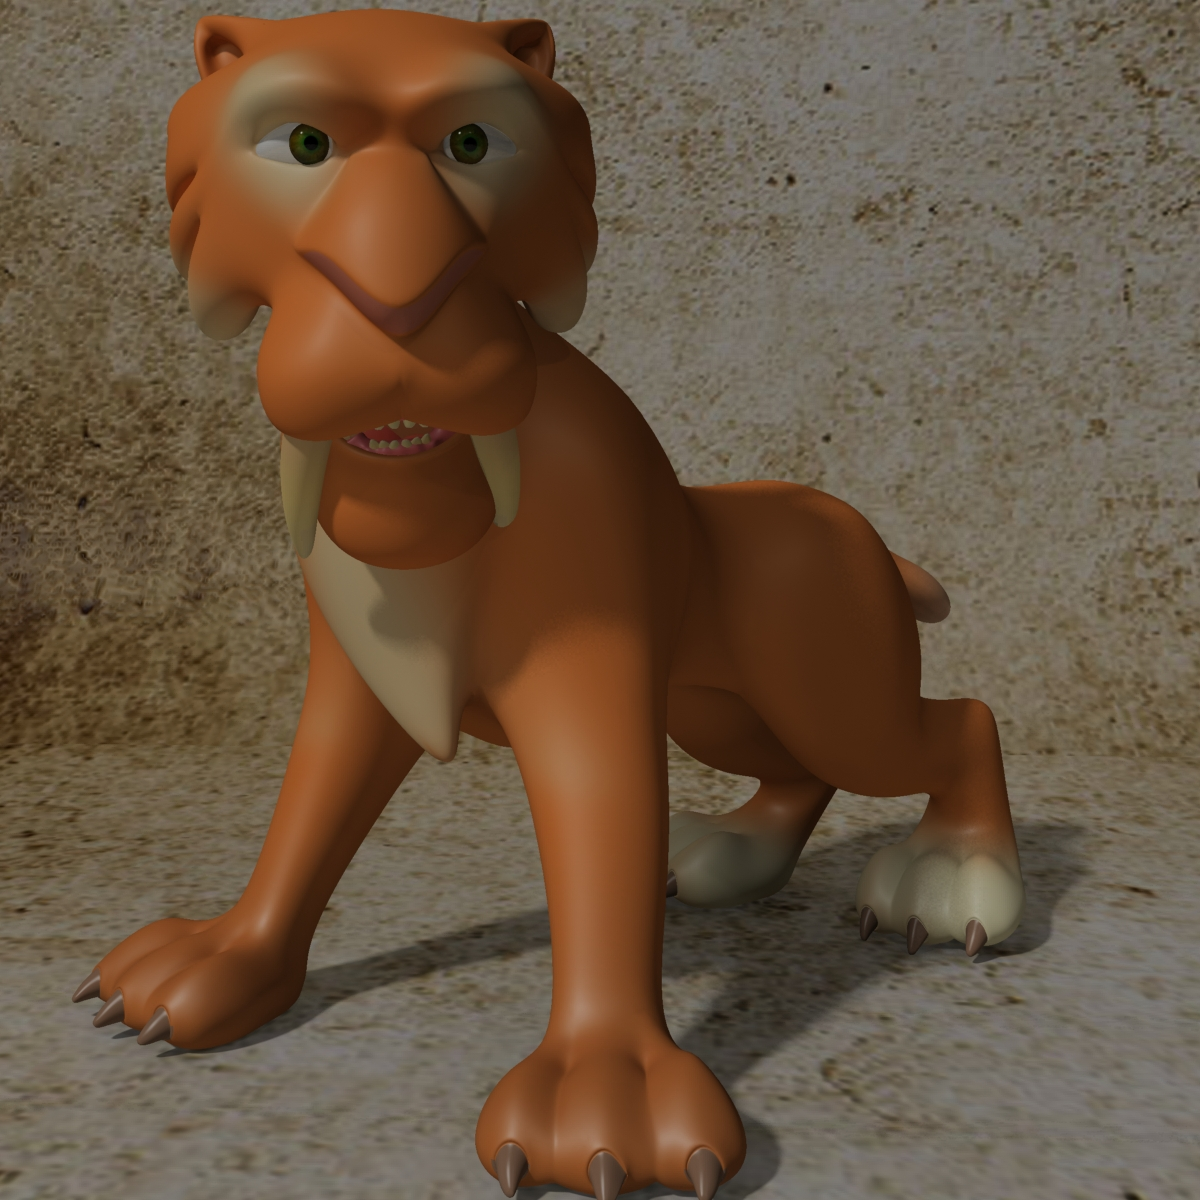 cartoon sabertooth tiger rigged 3d model 3ds max fbx  obj 214098